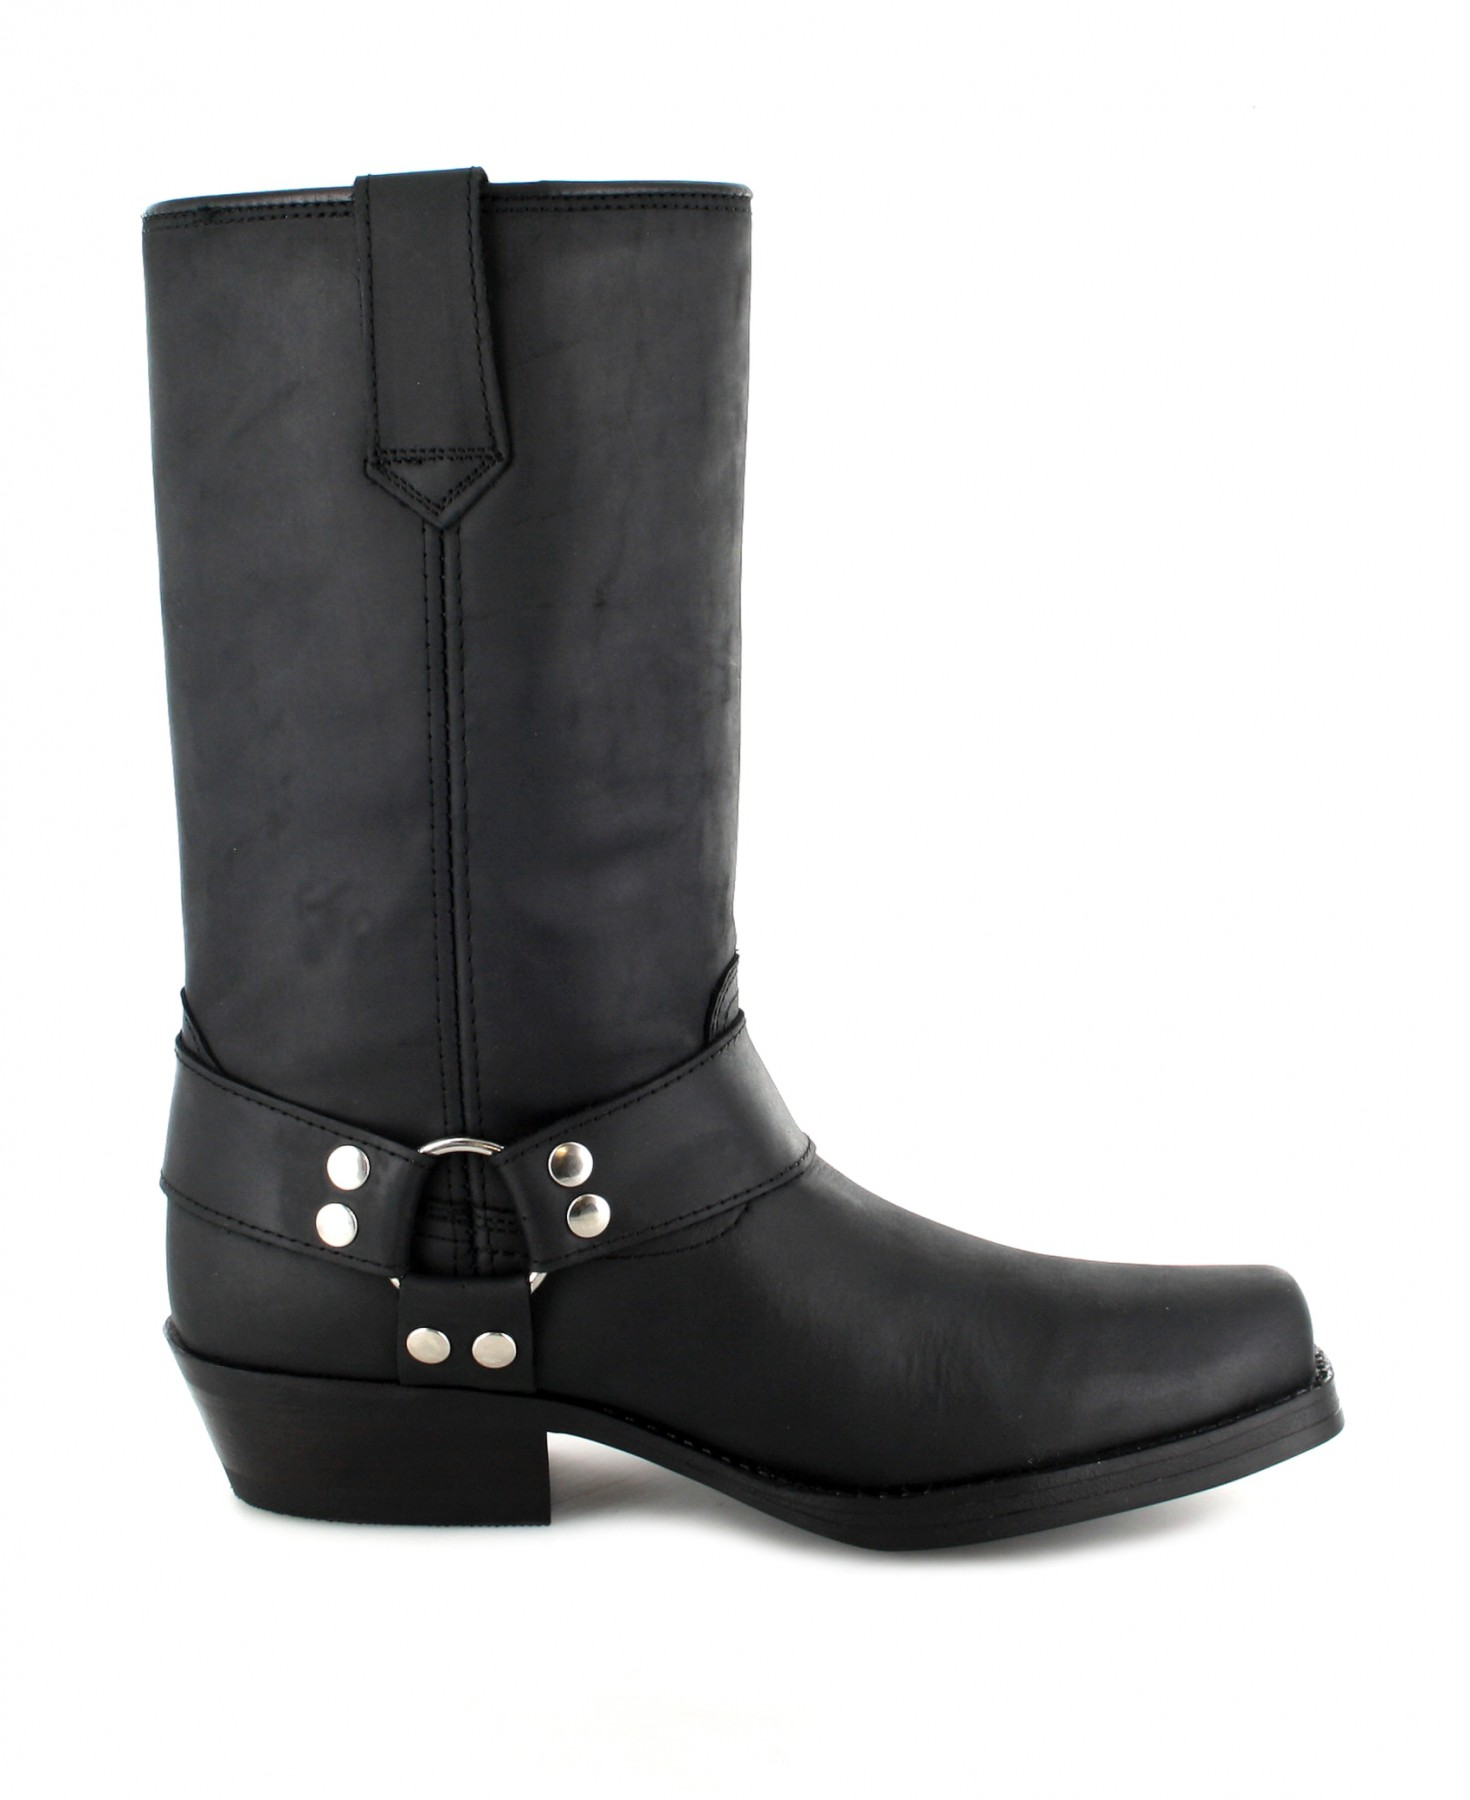 Fashion Boots BU2005 Black biker boot with rubber sole ...